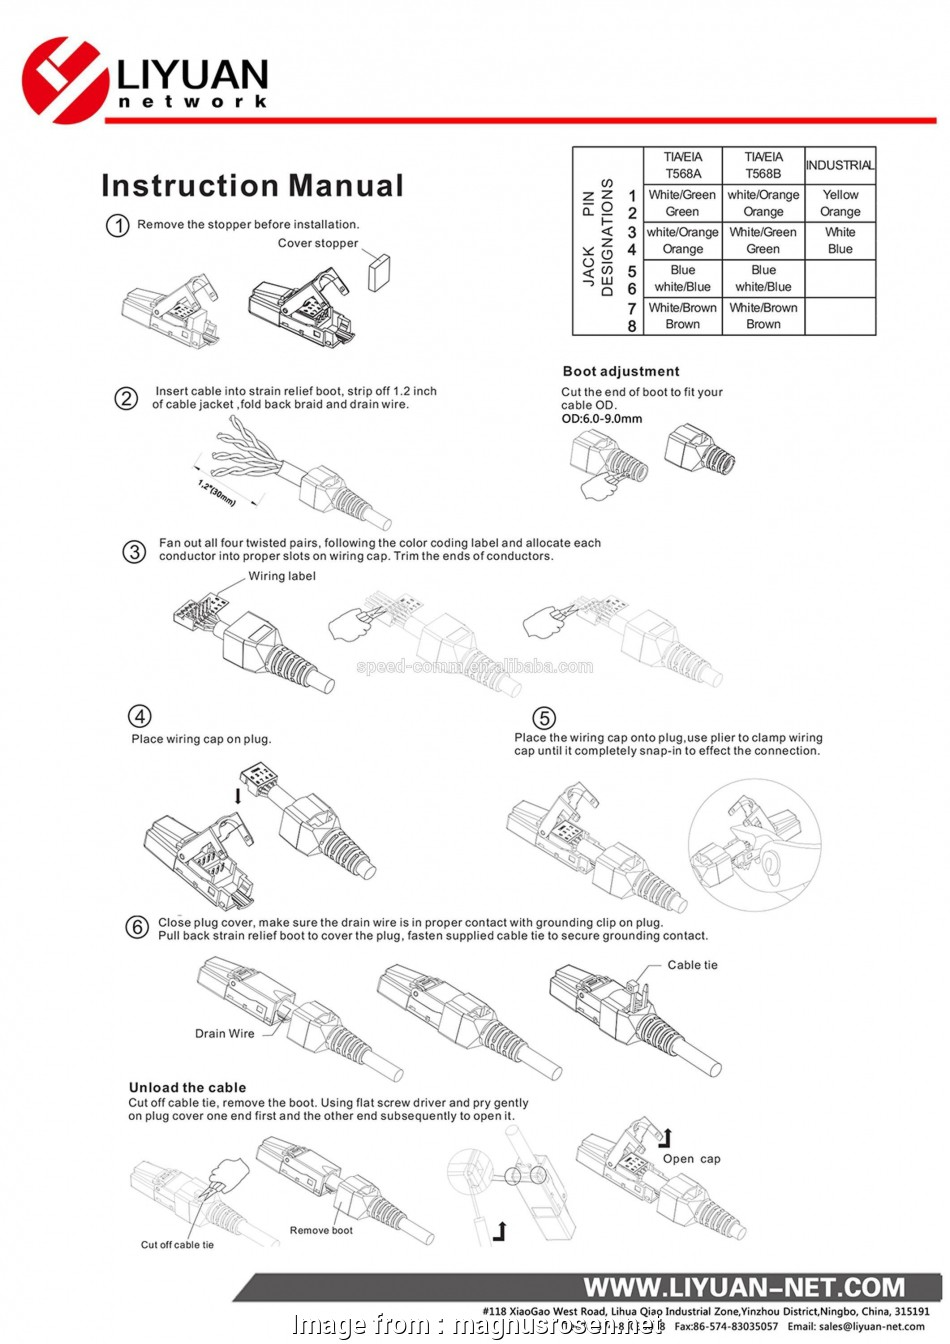 Usb To Rj45 Wiring Diagram Nice Apc, To Rj45 Cable Pinout